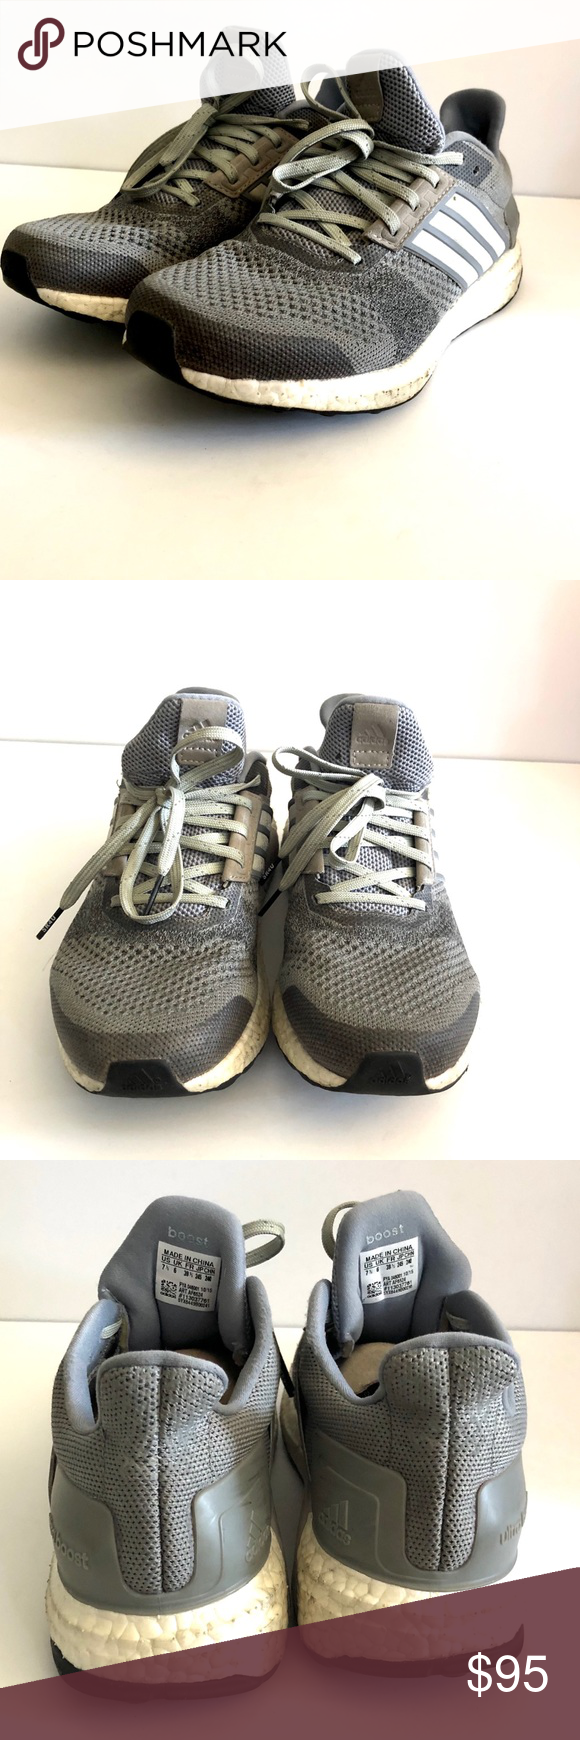 31d3eceb3922f Preowned women s Adidas Ultra Boost ST Gray sz 7.5 Used in good condition.  Sole is great and cushioned. Definite signs of wear. Every pair of shoes is  ...